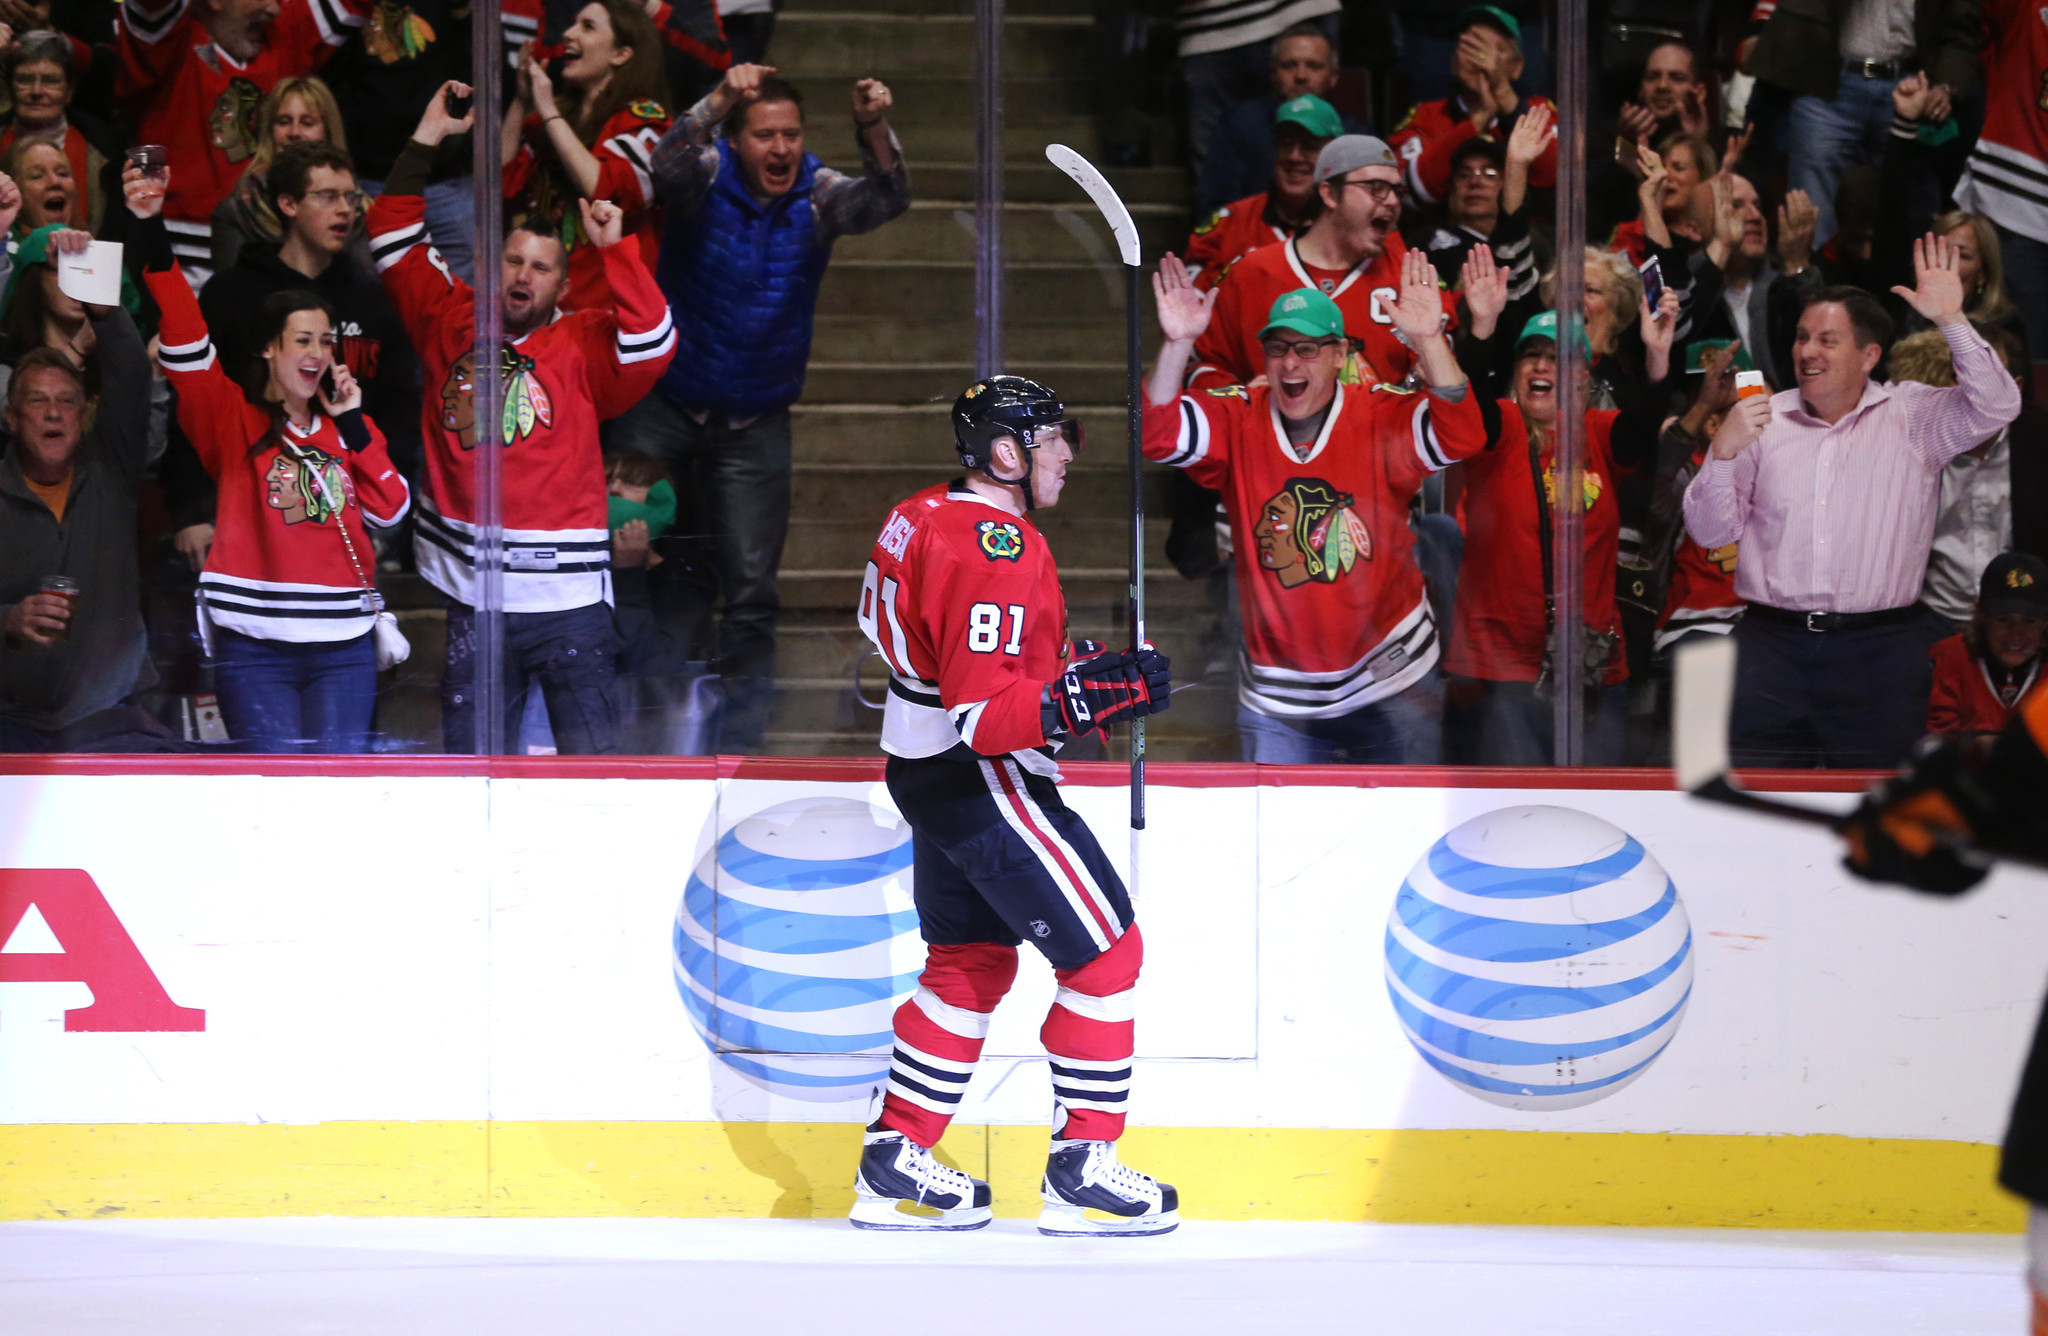 500 marian hossa on verge of making nhl history with